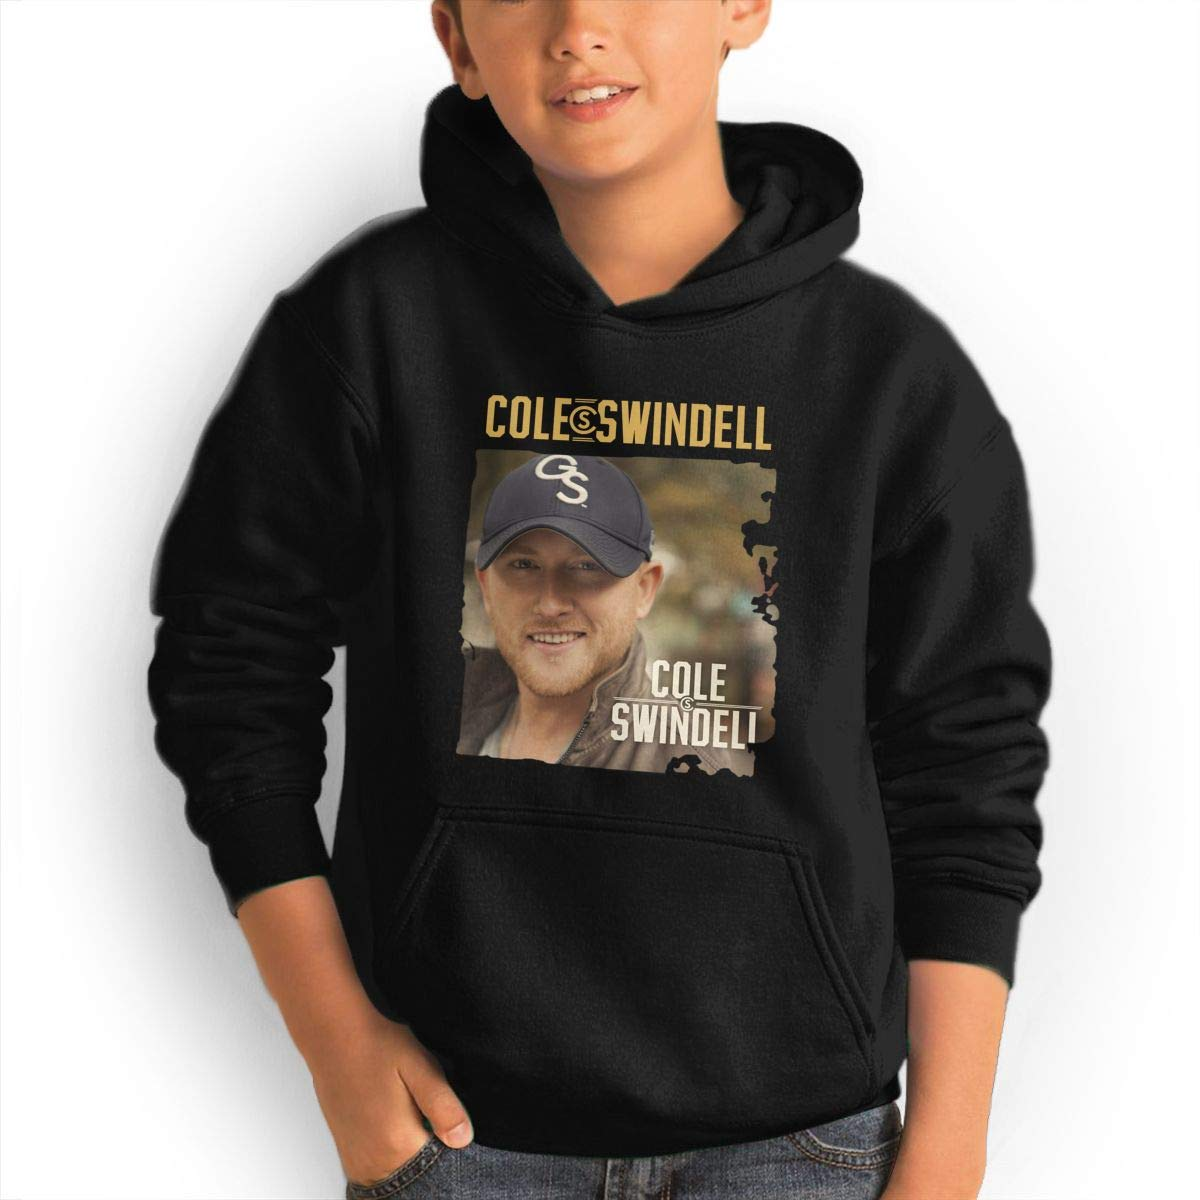 N S Cole Swindell Hooded Cool Aesthetic For Girls Shirts